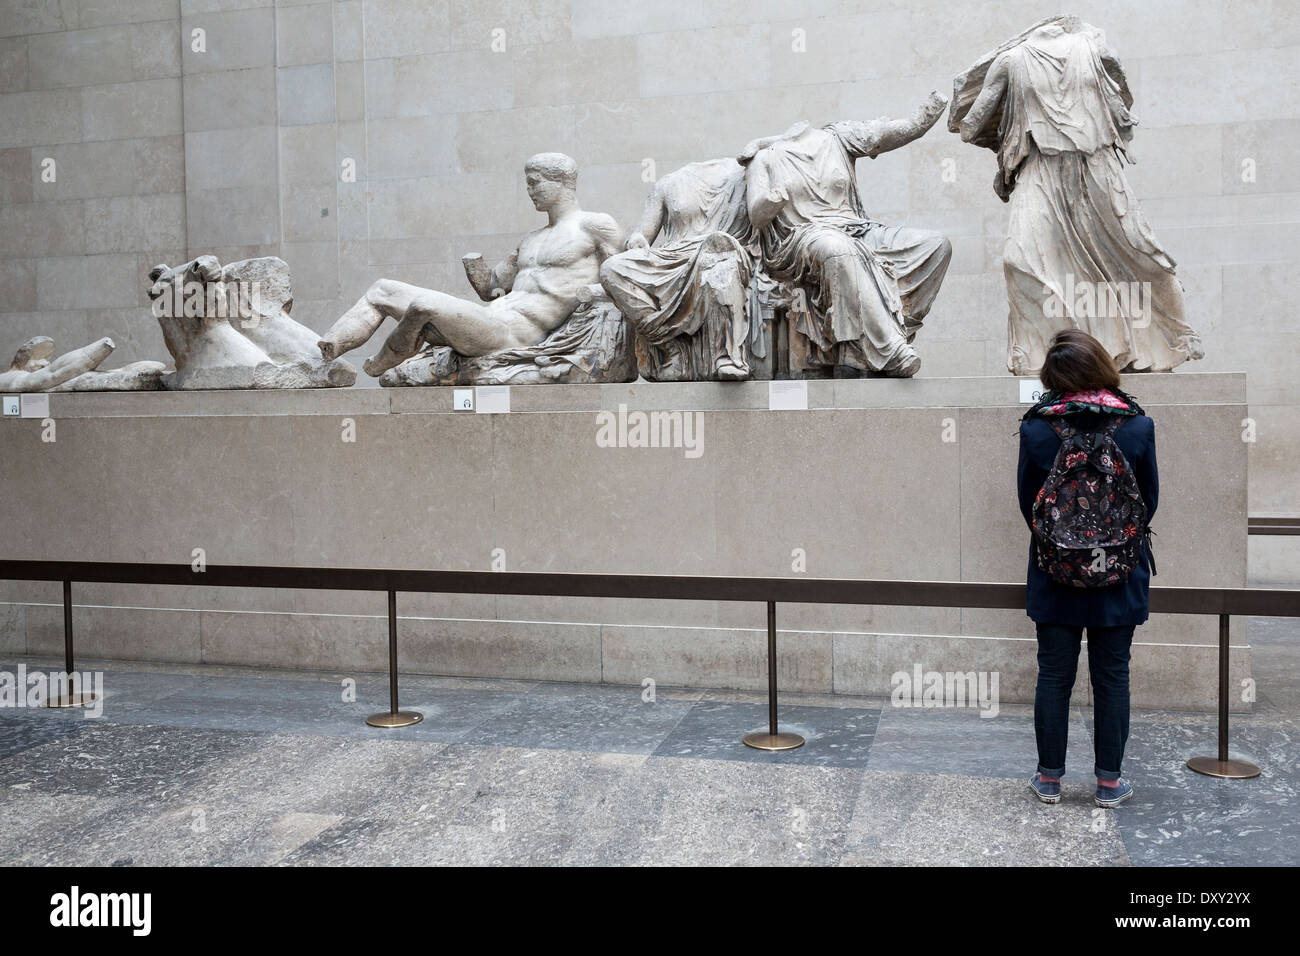 A tourist in front of the East Pediment of Parthenon in British Museum, London. - Stock Image